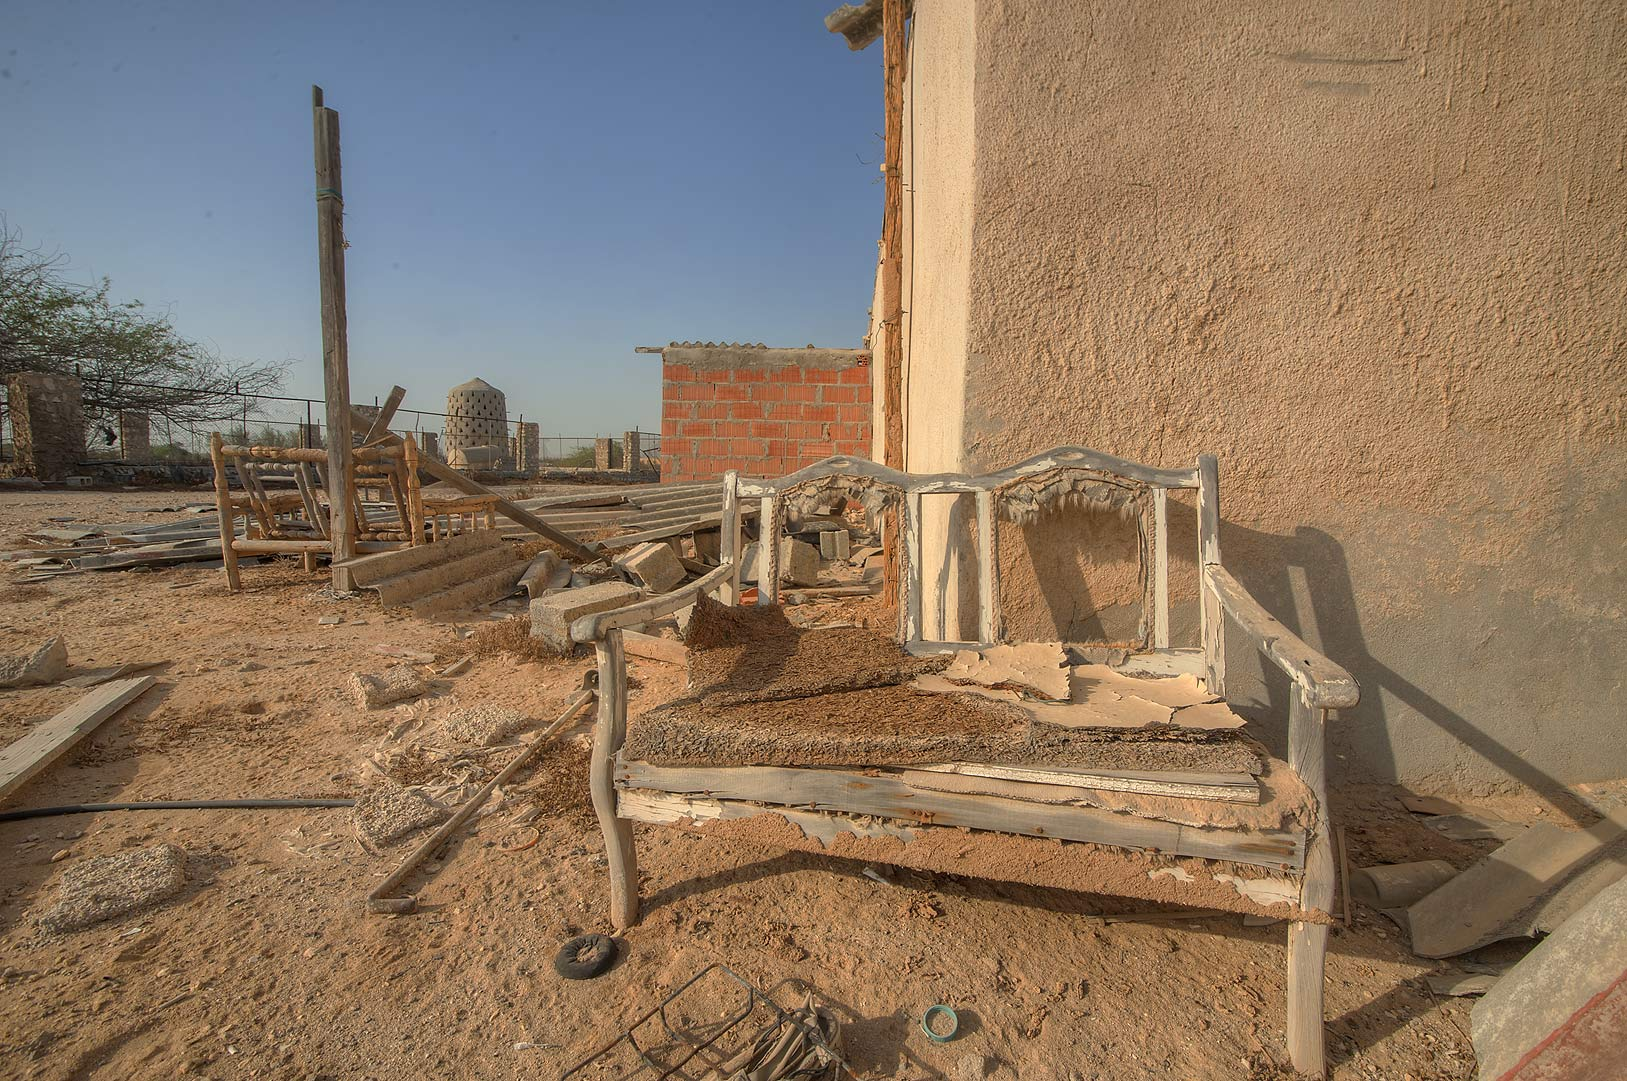 Traditional dikka (raised seat) in a village of...of Ras Laffan Farms. Northern Qatar